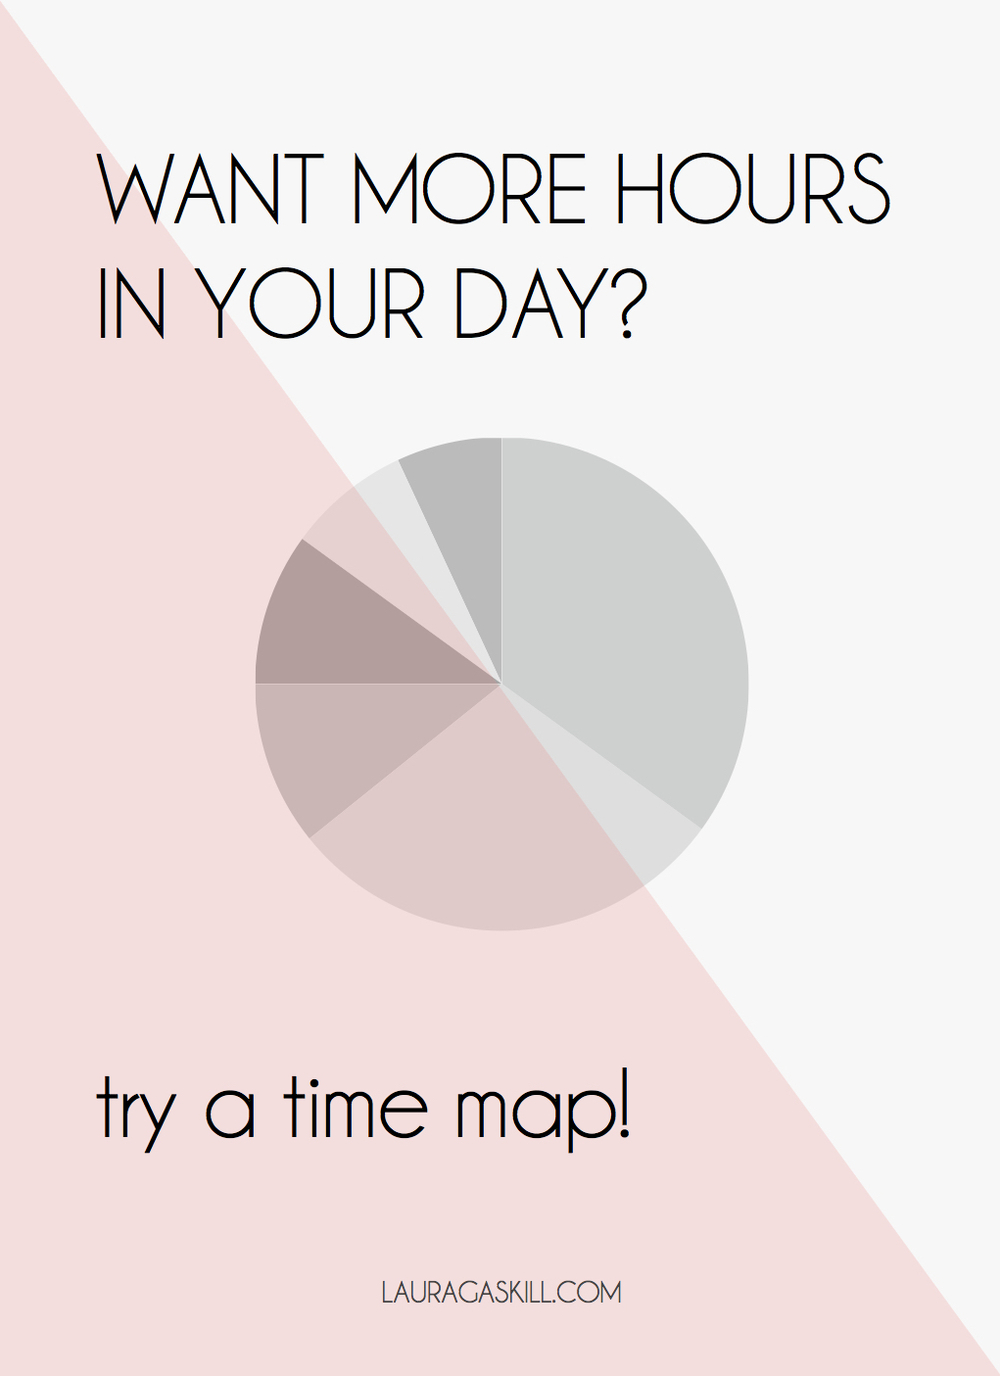 Want More Hours in Your Day? Make a time map! (I'll show you how)